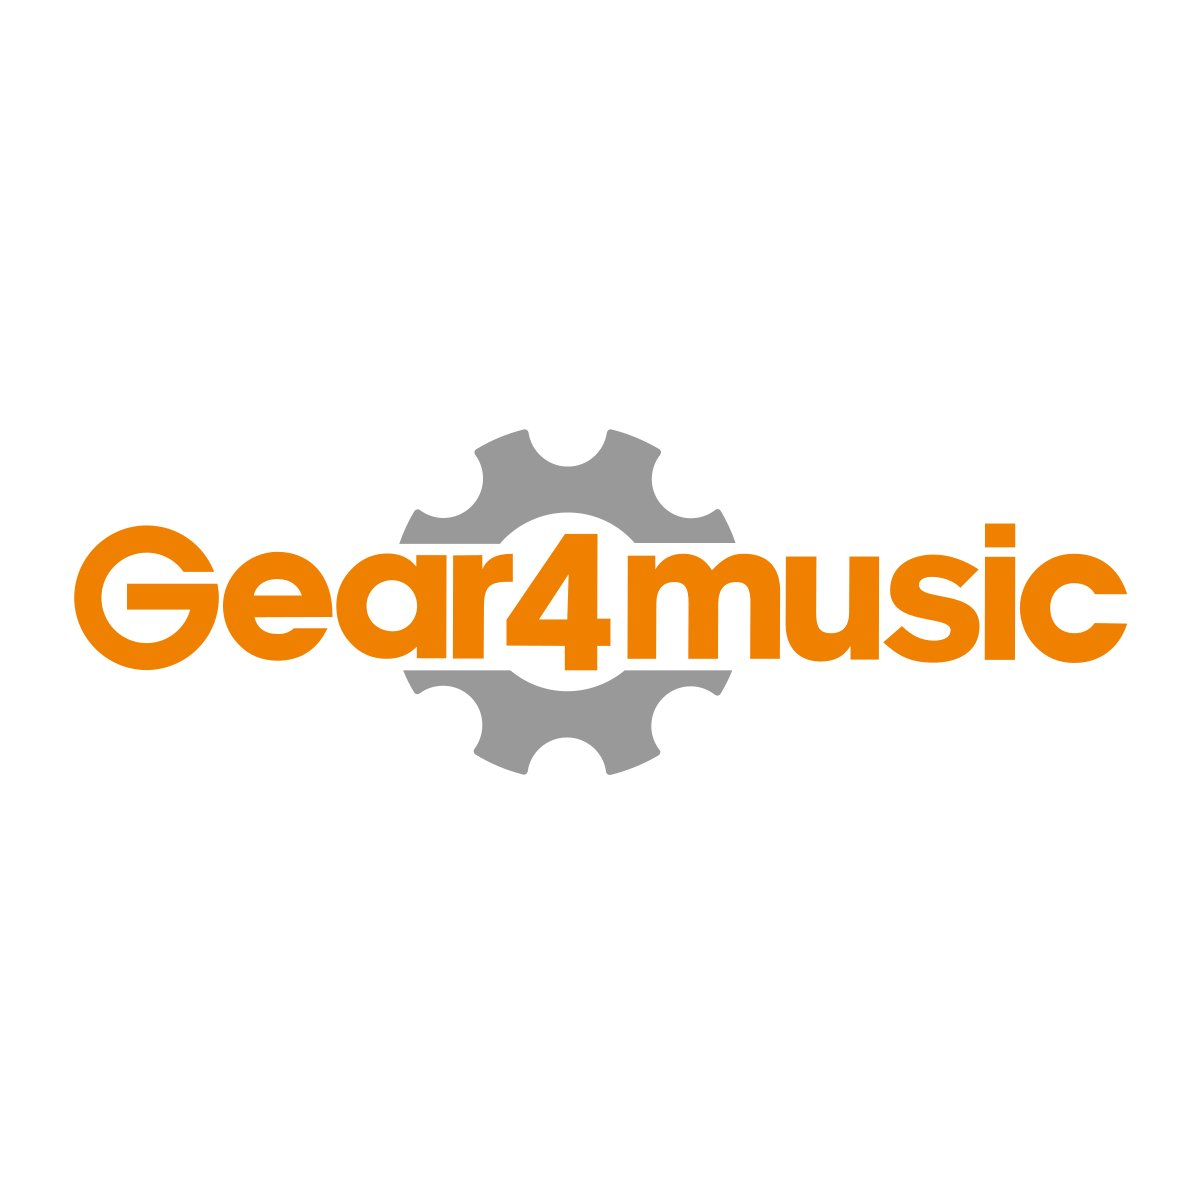 LA guitare par Gear4music, rouge - B-Stock